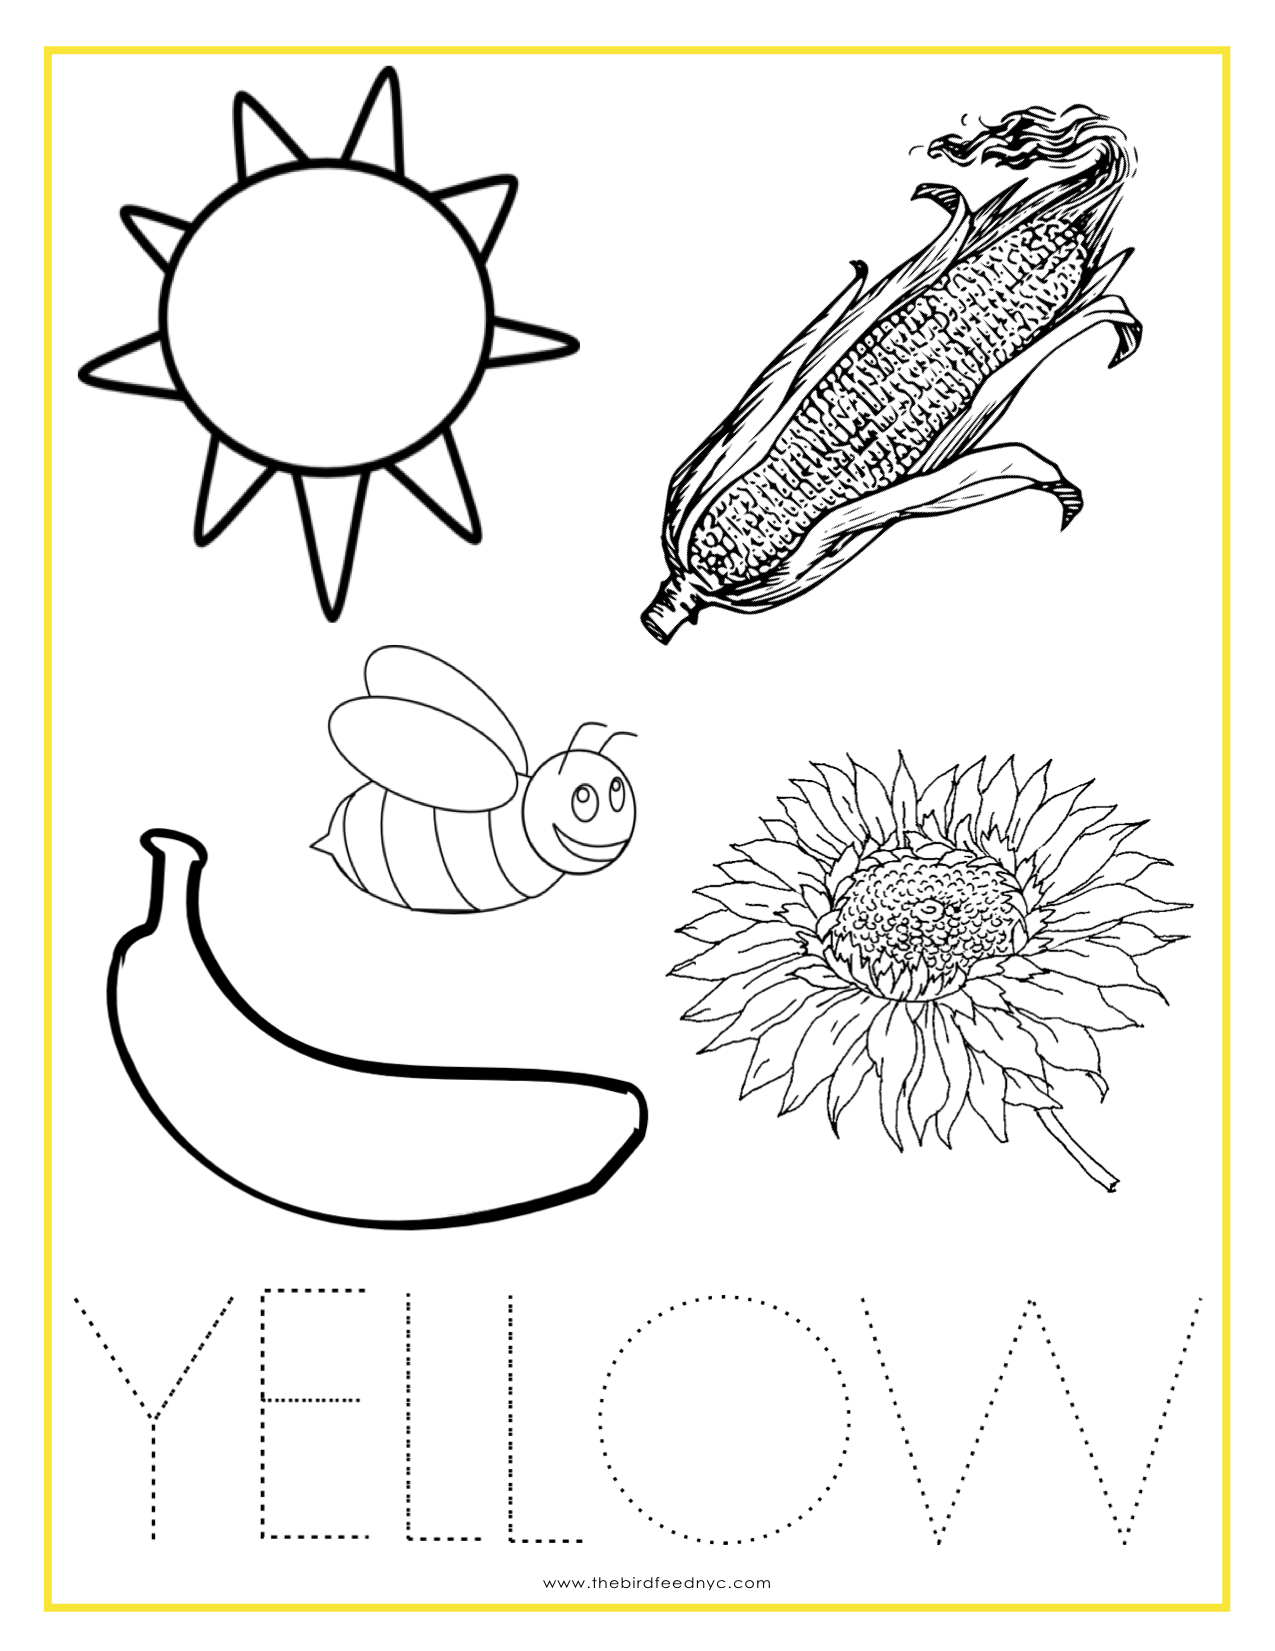 Childrens educational coloring activity book - Yellow Color Activity Sheet Repinned By Totetude Com